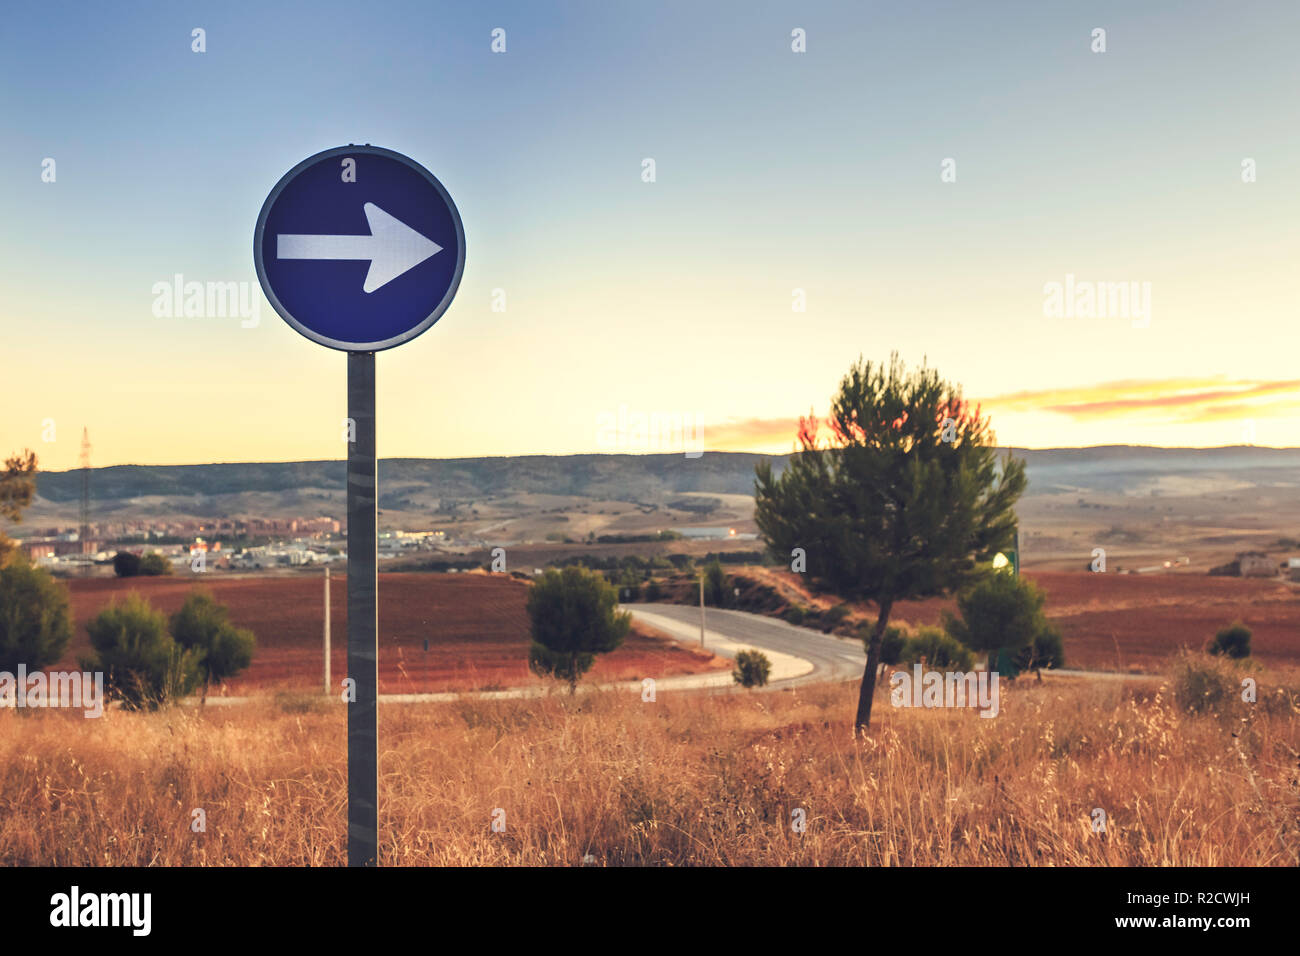 Mandatory direction traffic sign to the right at sunrise with blue sky background - Stock Image